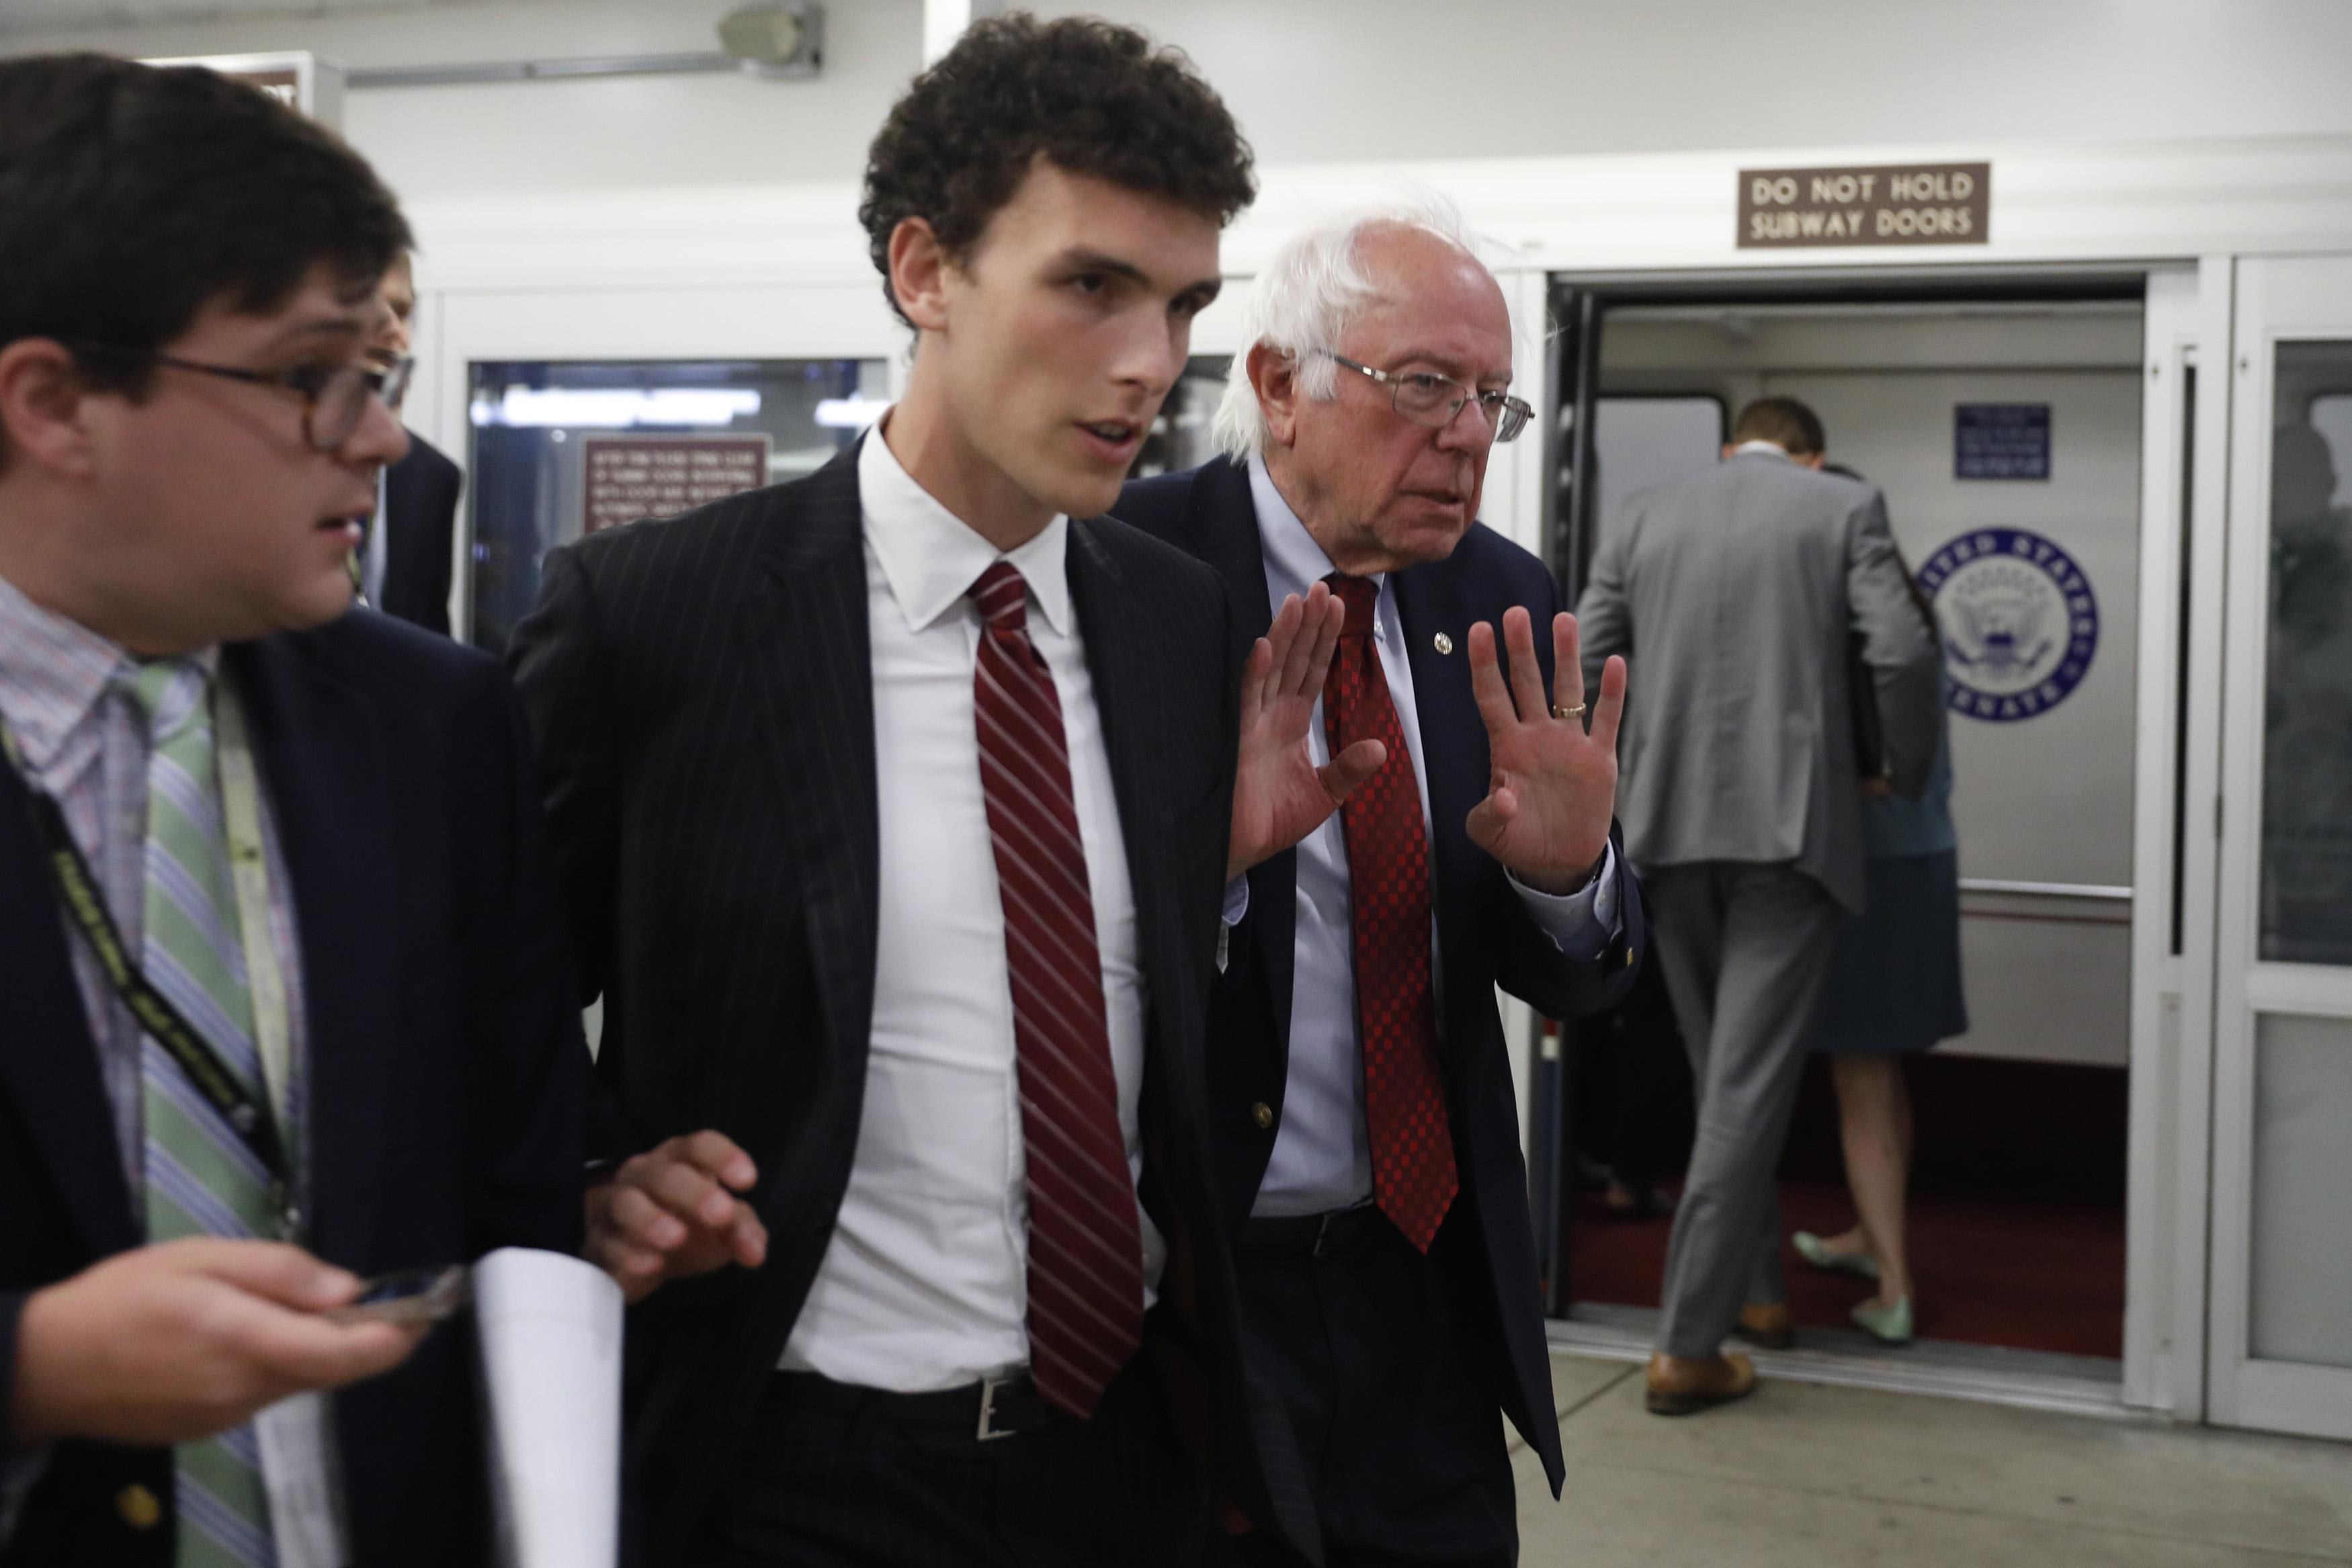 WASHINGTON, DC - SEPTEMBER 12:  U.S. Sen. Bernie Sanders (I-VT) declines to speak with a reporter ahead of the Democratic Party luncheon on Capitol Hill September 12, 2017 in Washington, DC. Sanders is expected to introduce a single payer health care bill this week .(Photo by Aaron P. Bernstein/Getty Images)